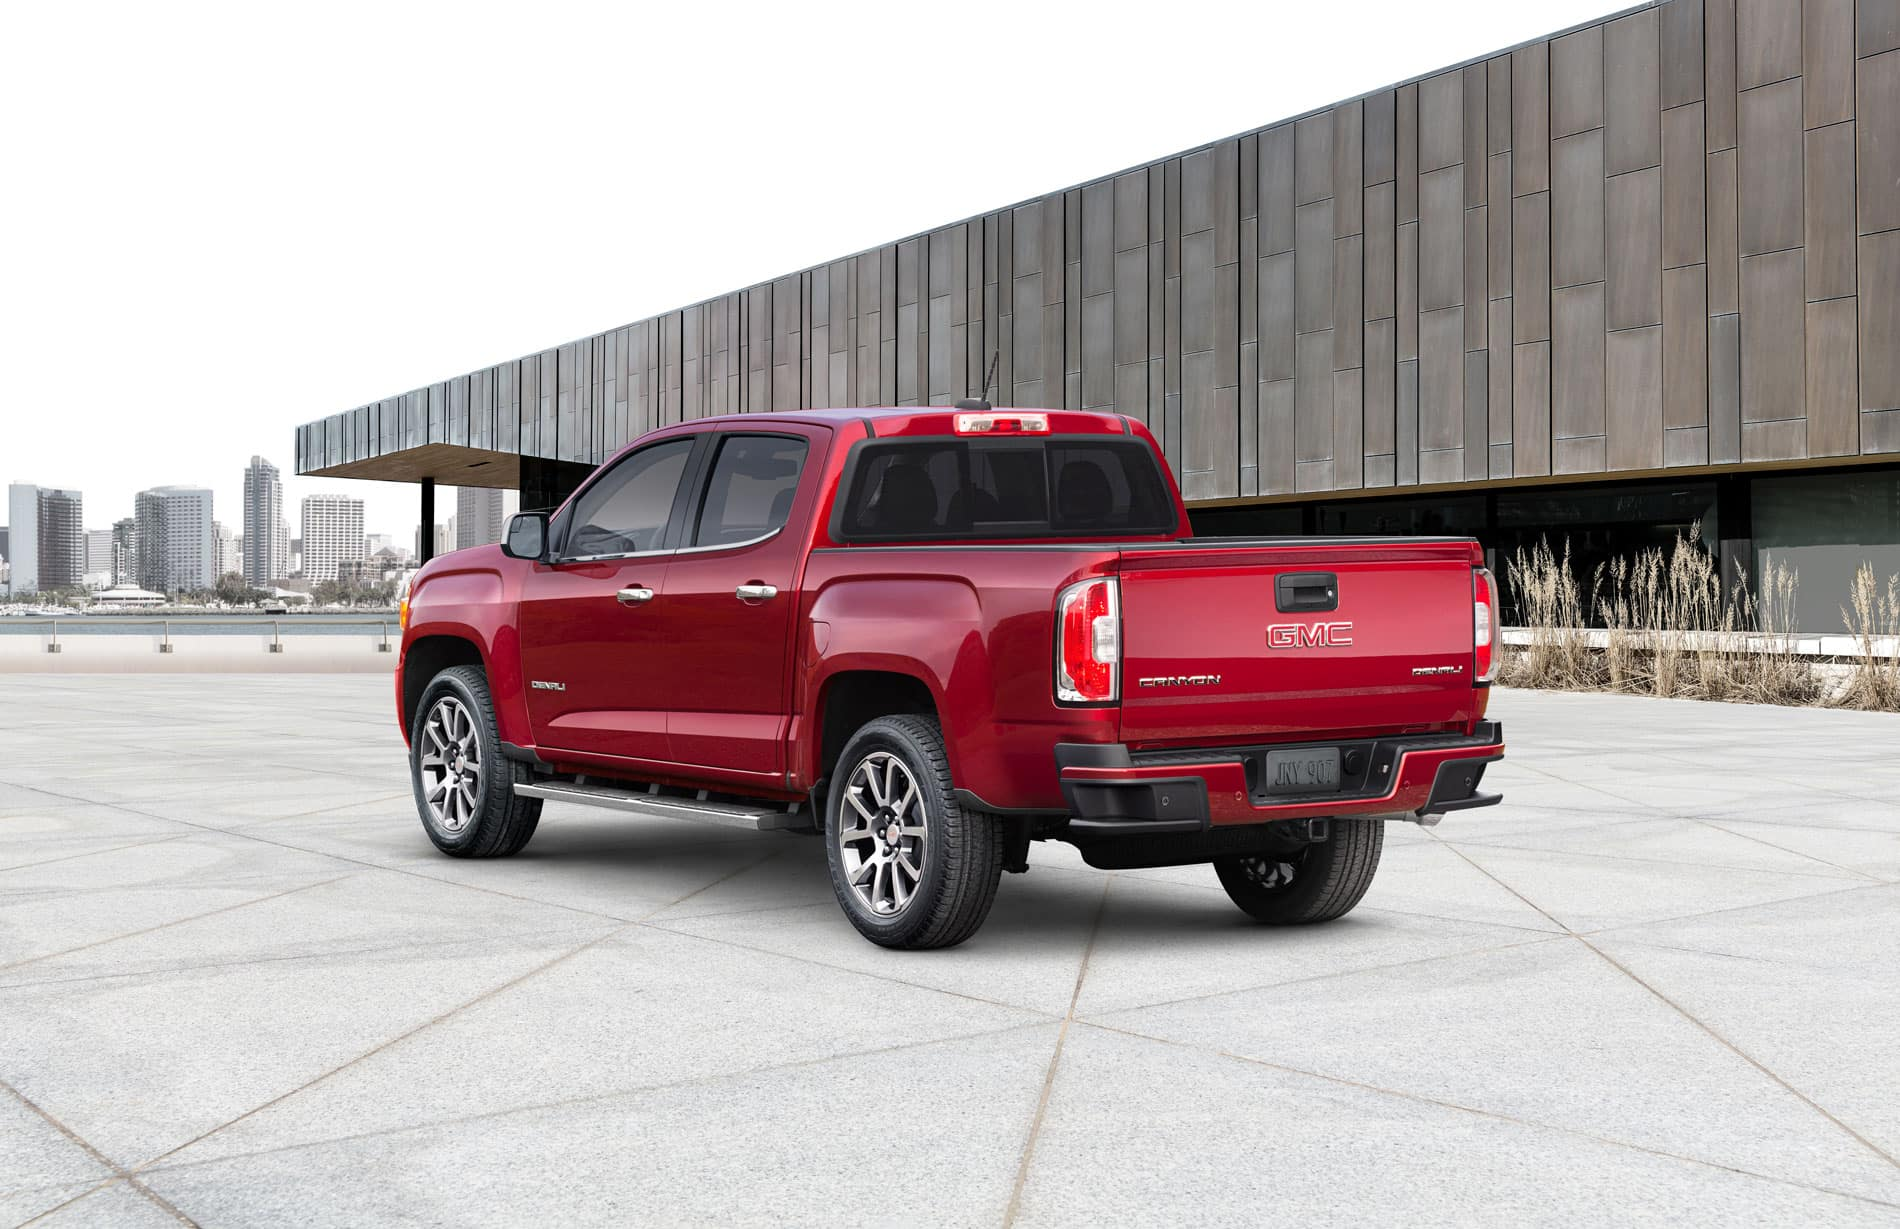 Gmc Canyon Vs Ford Ranger Blast From The Past Rivalry A View Of Cadilac Escalade Wiring Harness For 2009 Exploded 2019 Is Perfect Pickup Two Ends Broad Midsize Spectrum Those Looking Basic Cheap Work Will Save